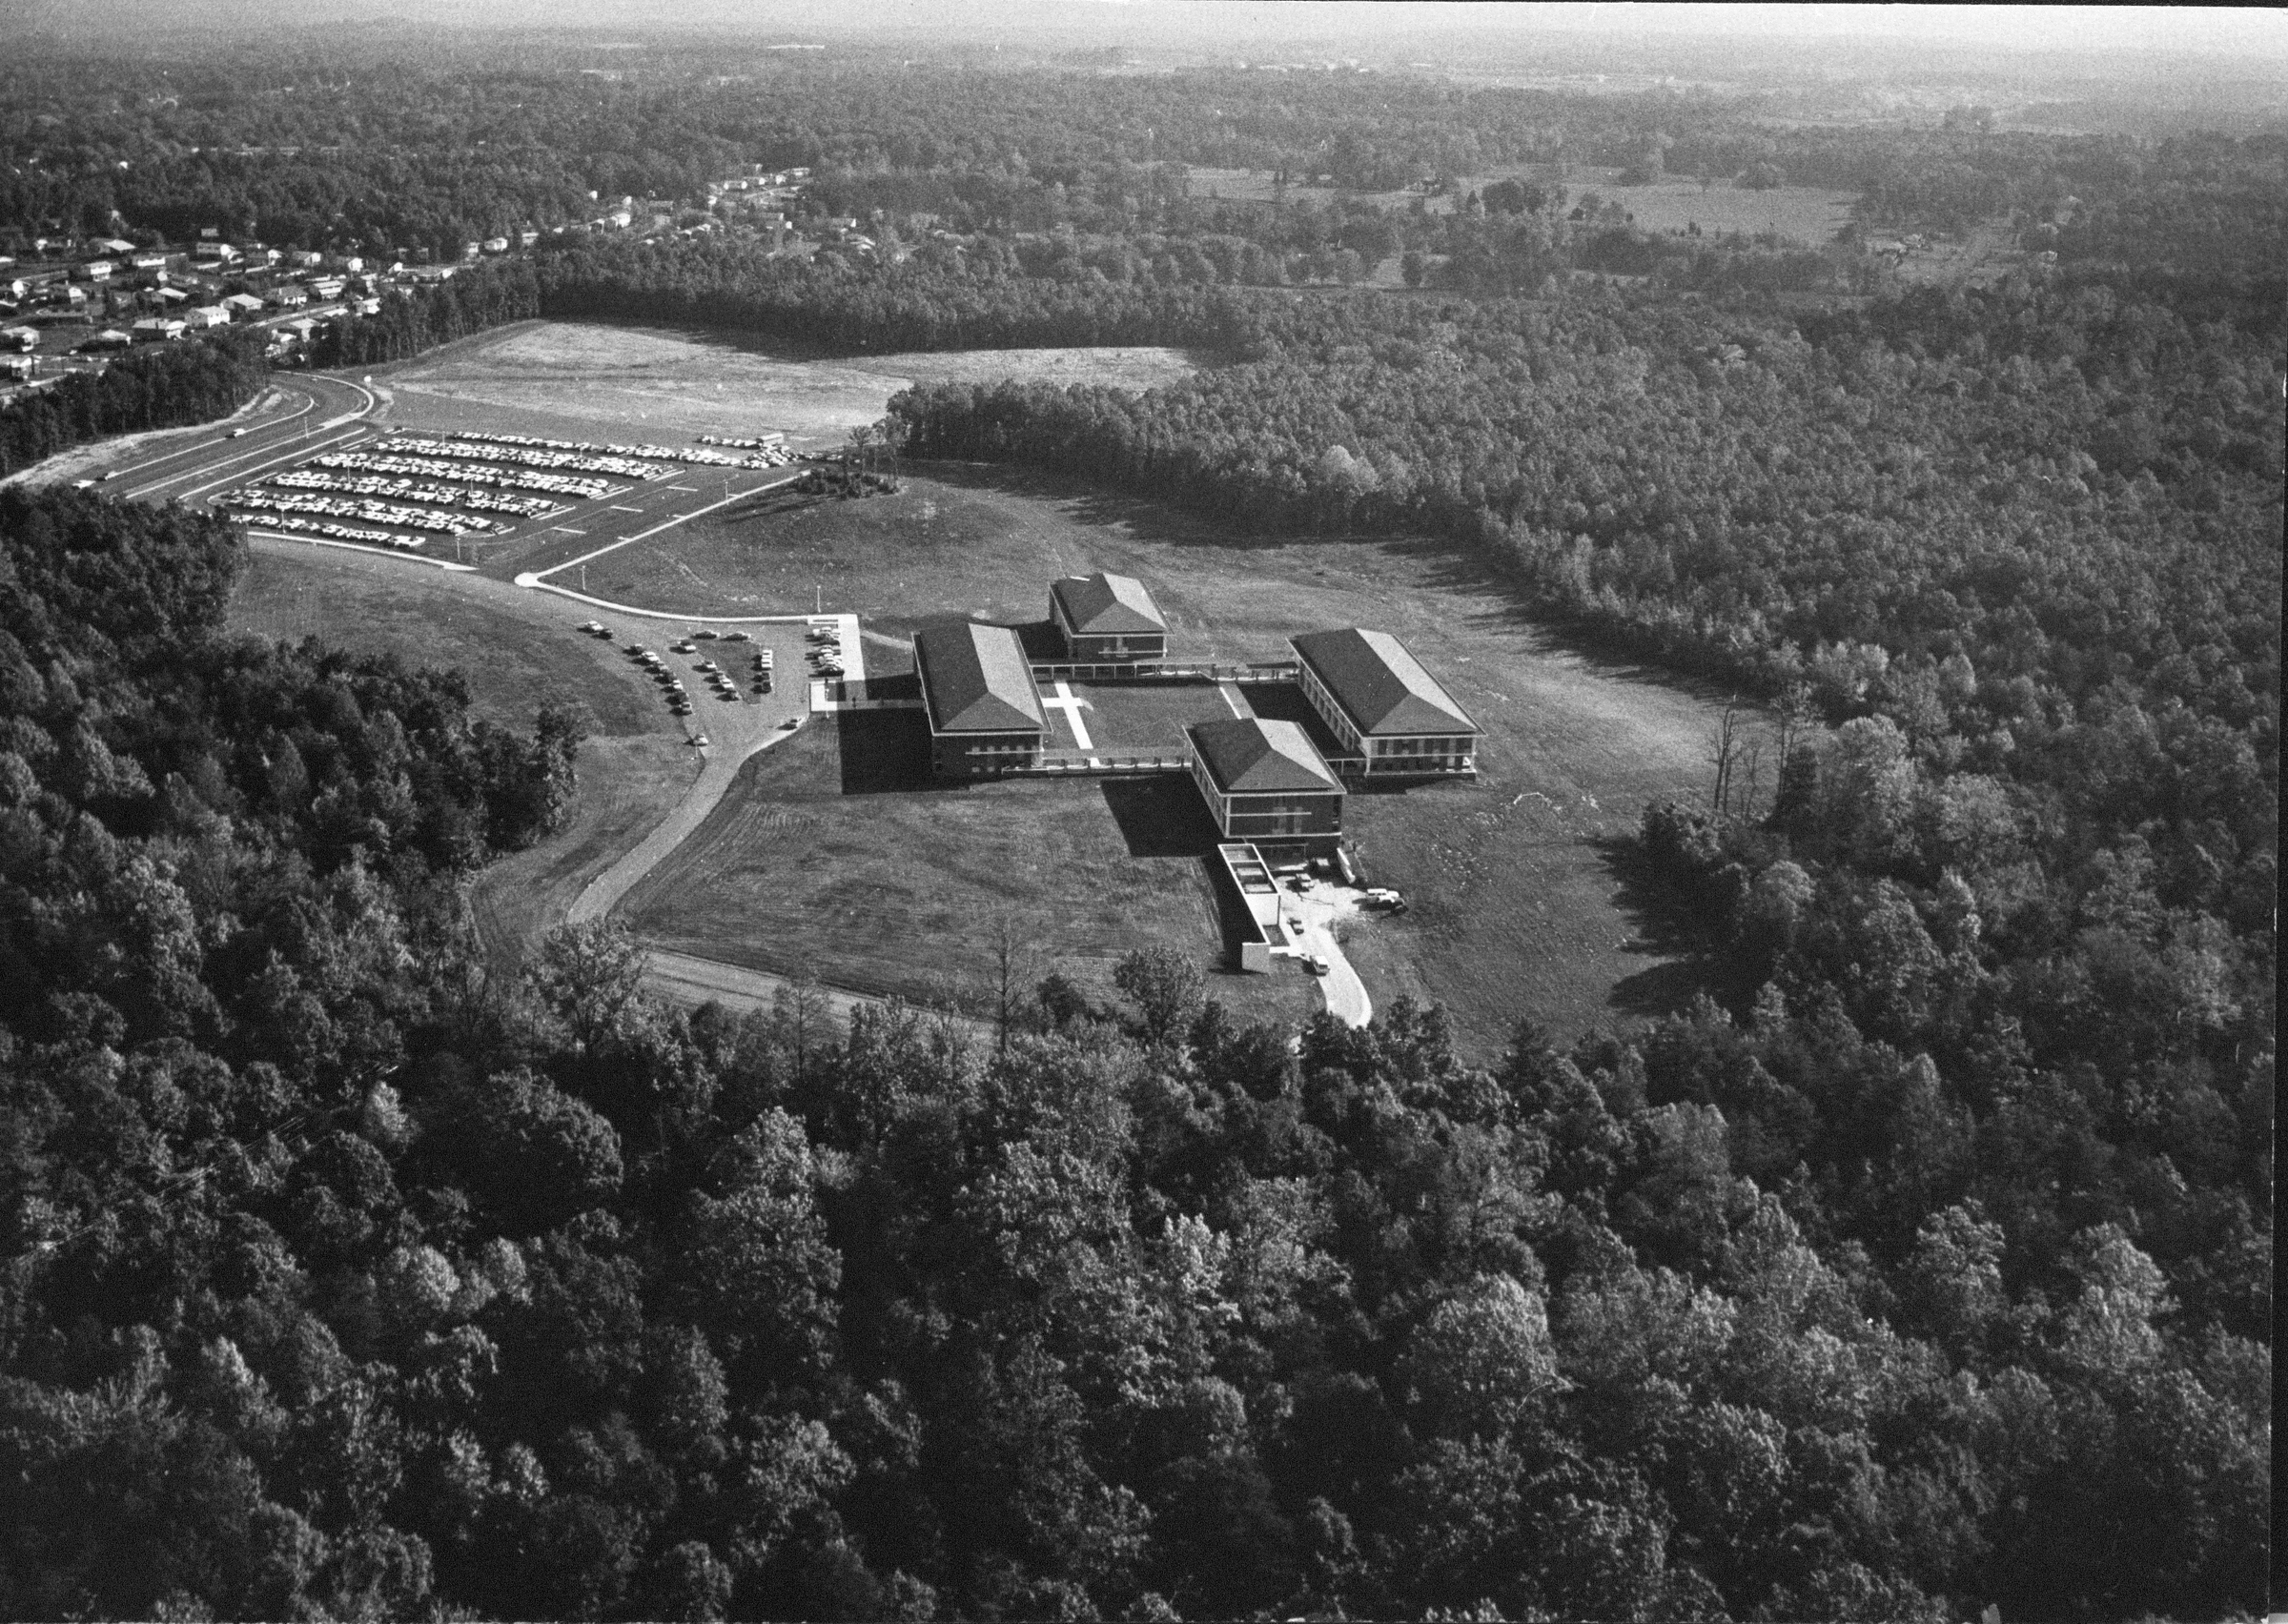 George Mason College, Fairfax campus, 1965, aerial photograph looking east.